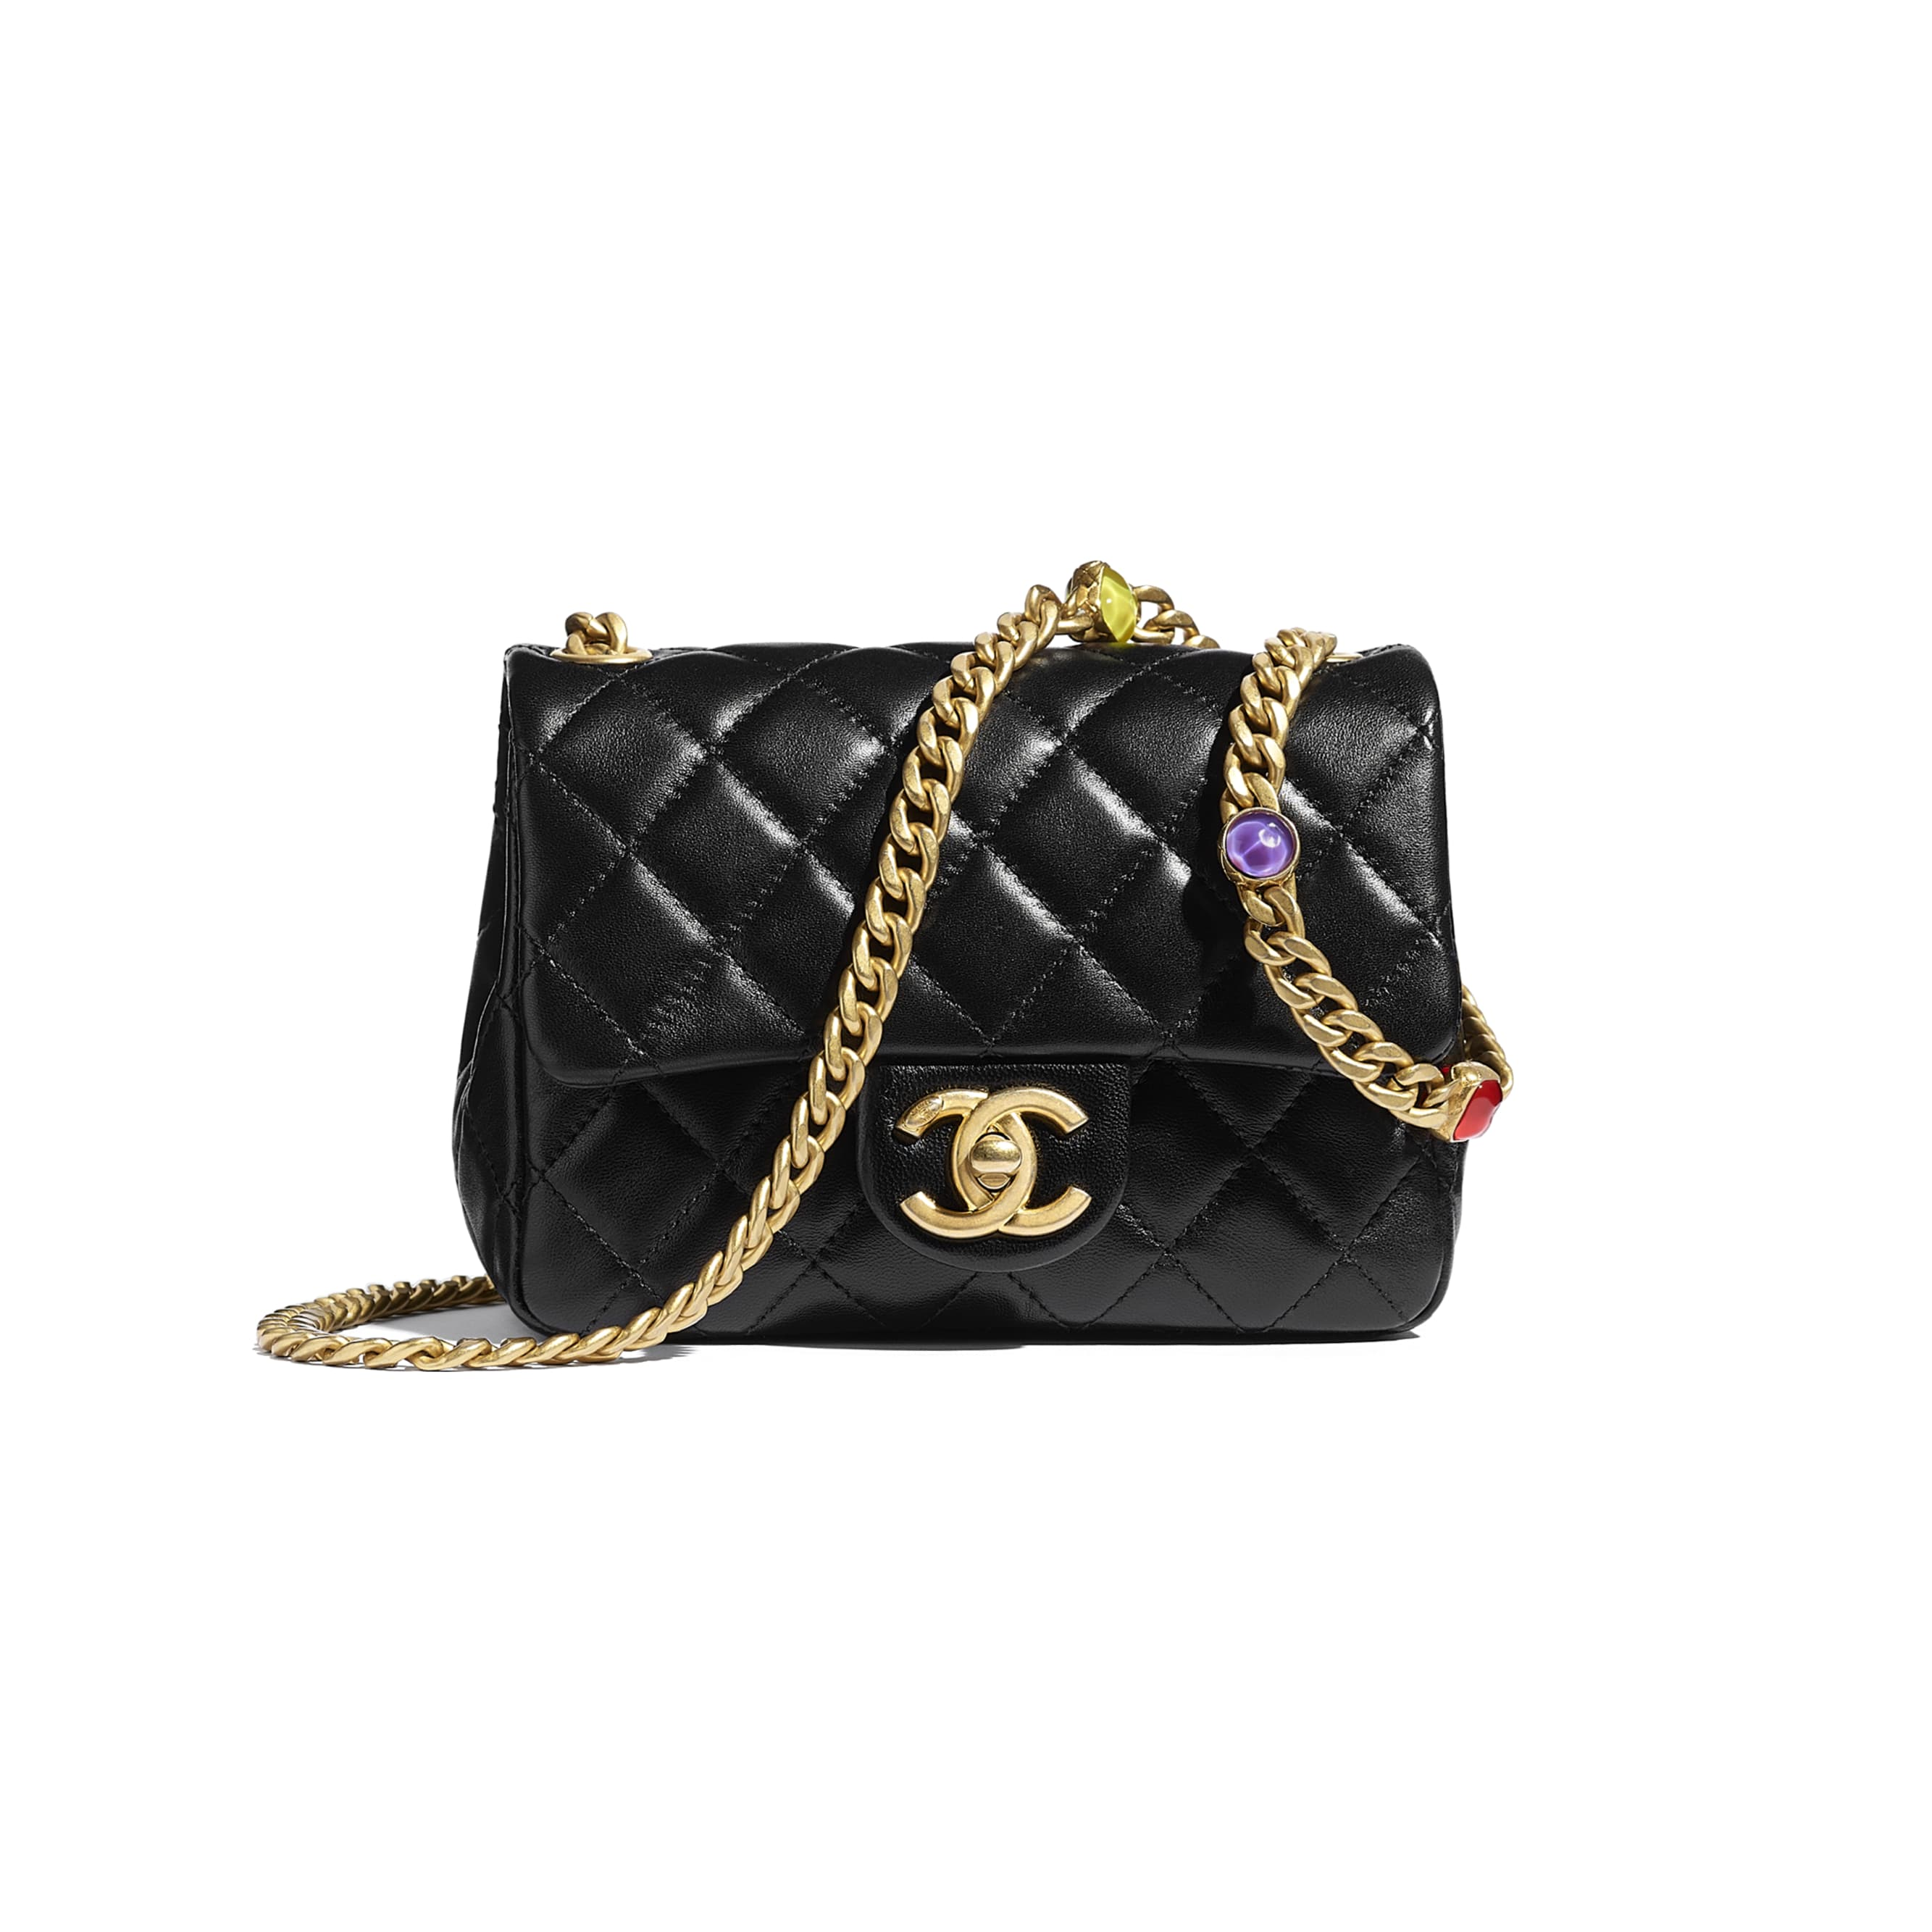 Flap Bag - Black - Lambskin, Resin & Gold-Tone Metal - CHANEL - Default view - see standard sized version